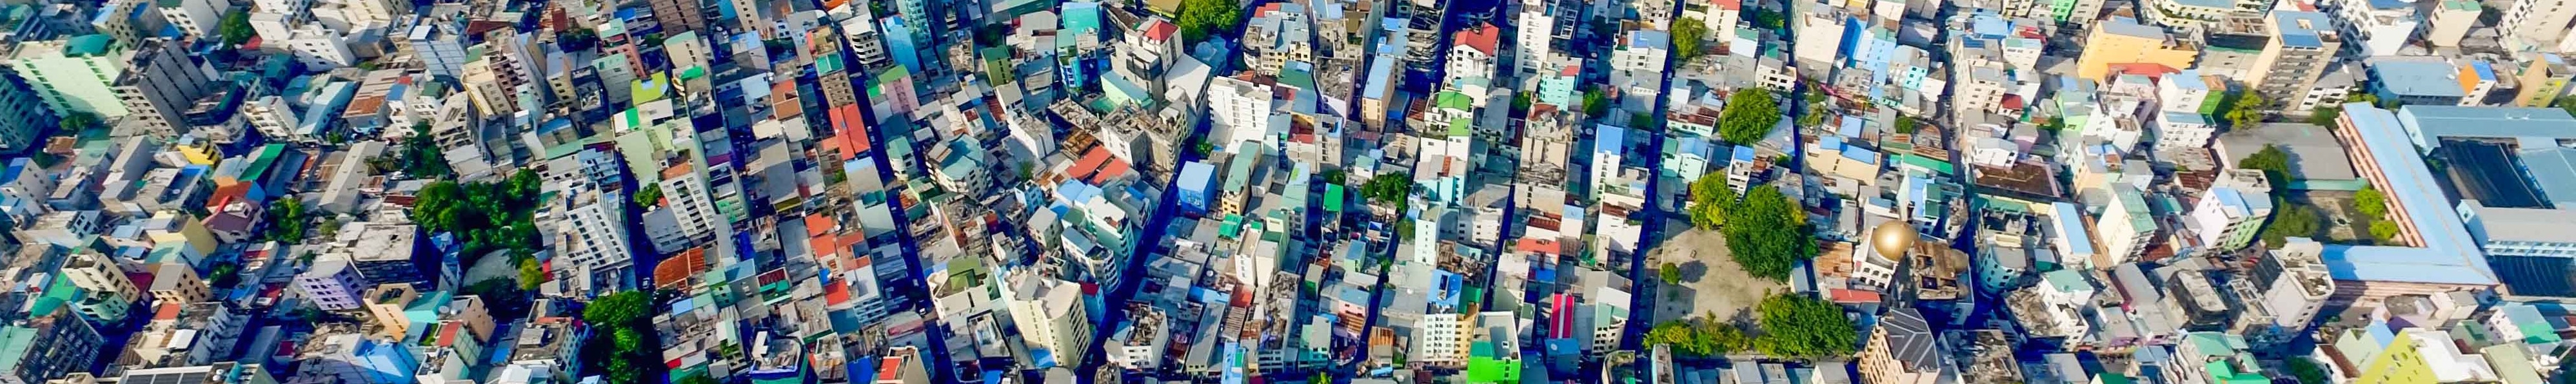 Picture of a large city which looks like its had major population growth.